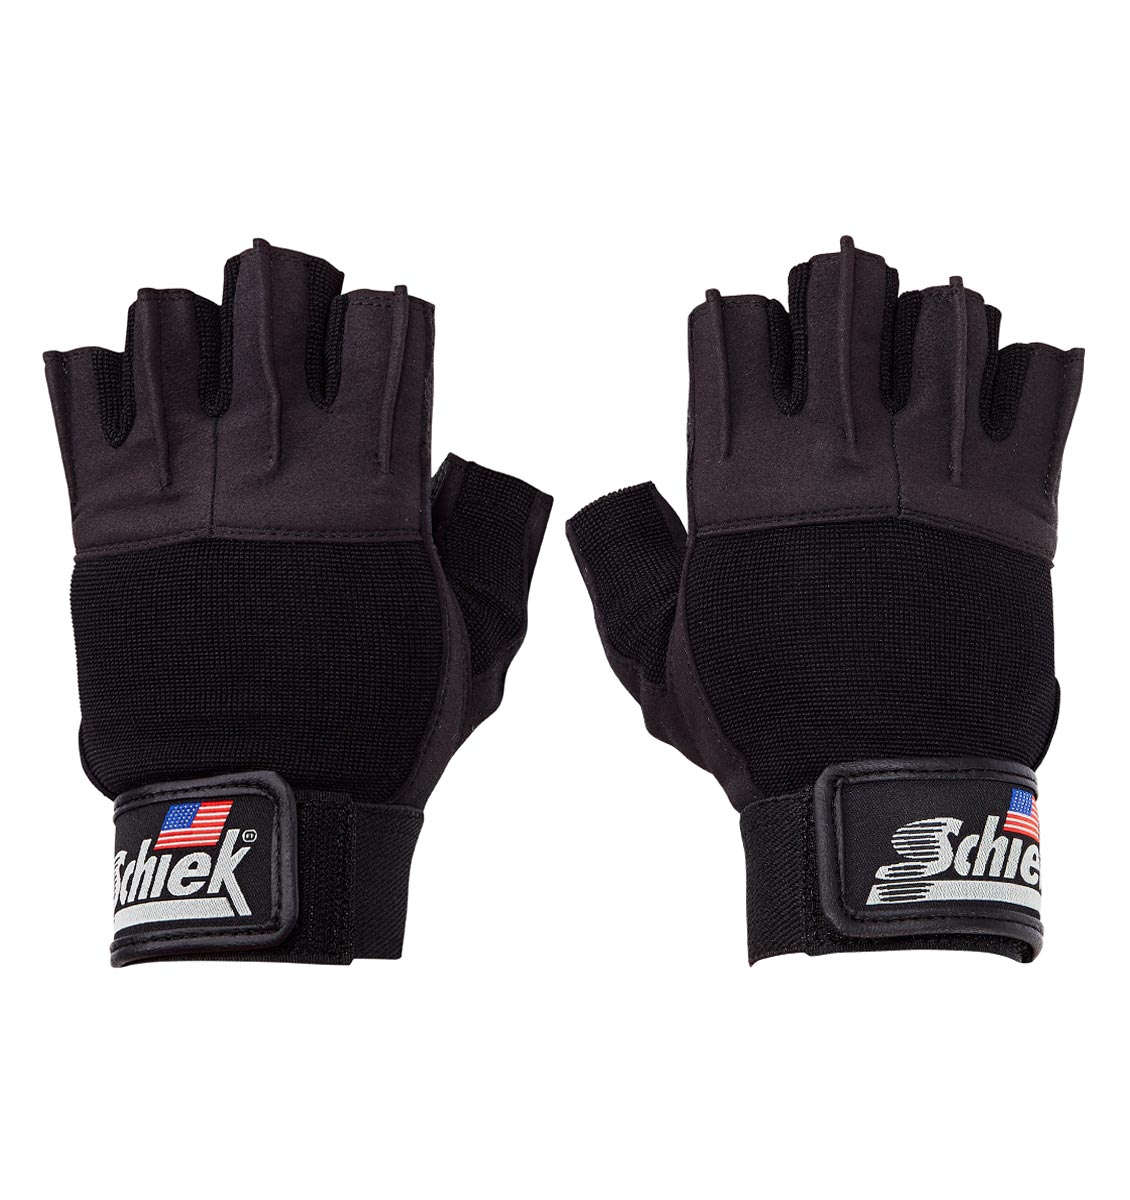 520 Schiek Womens Platinum Series Lifting Gym Gloves with Fins Pair Top